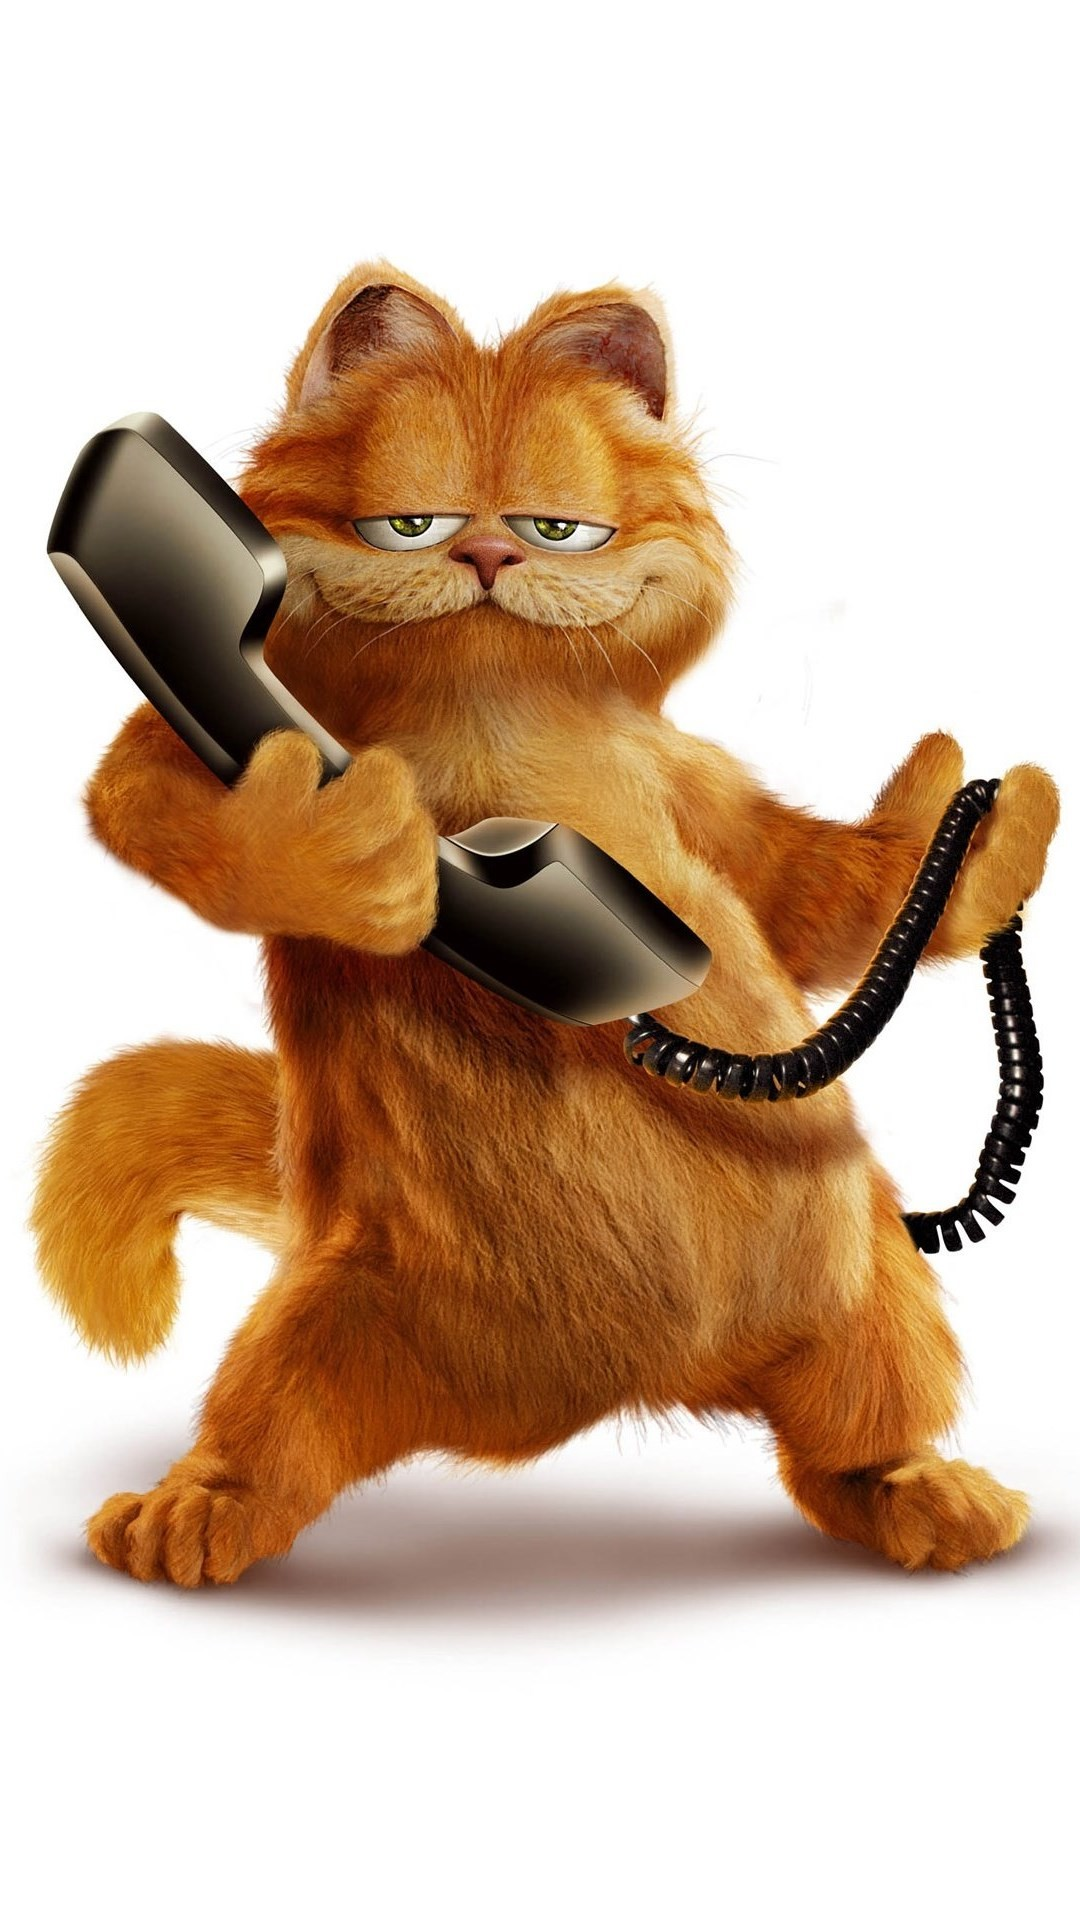 Garfield wallpaper 58 images - Garfield wallpapers for mobile ...